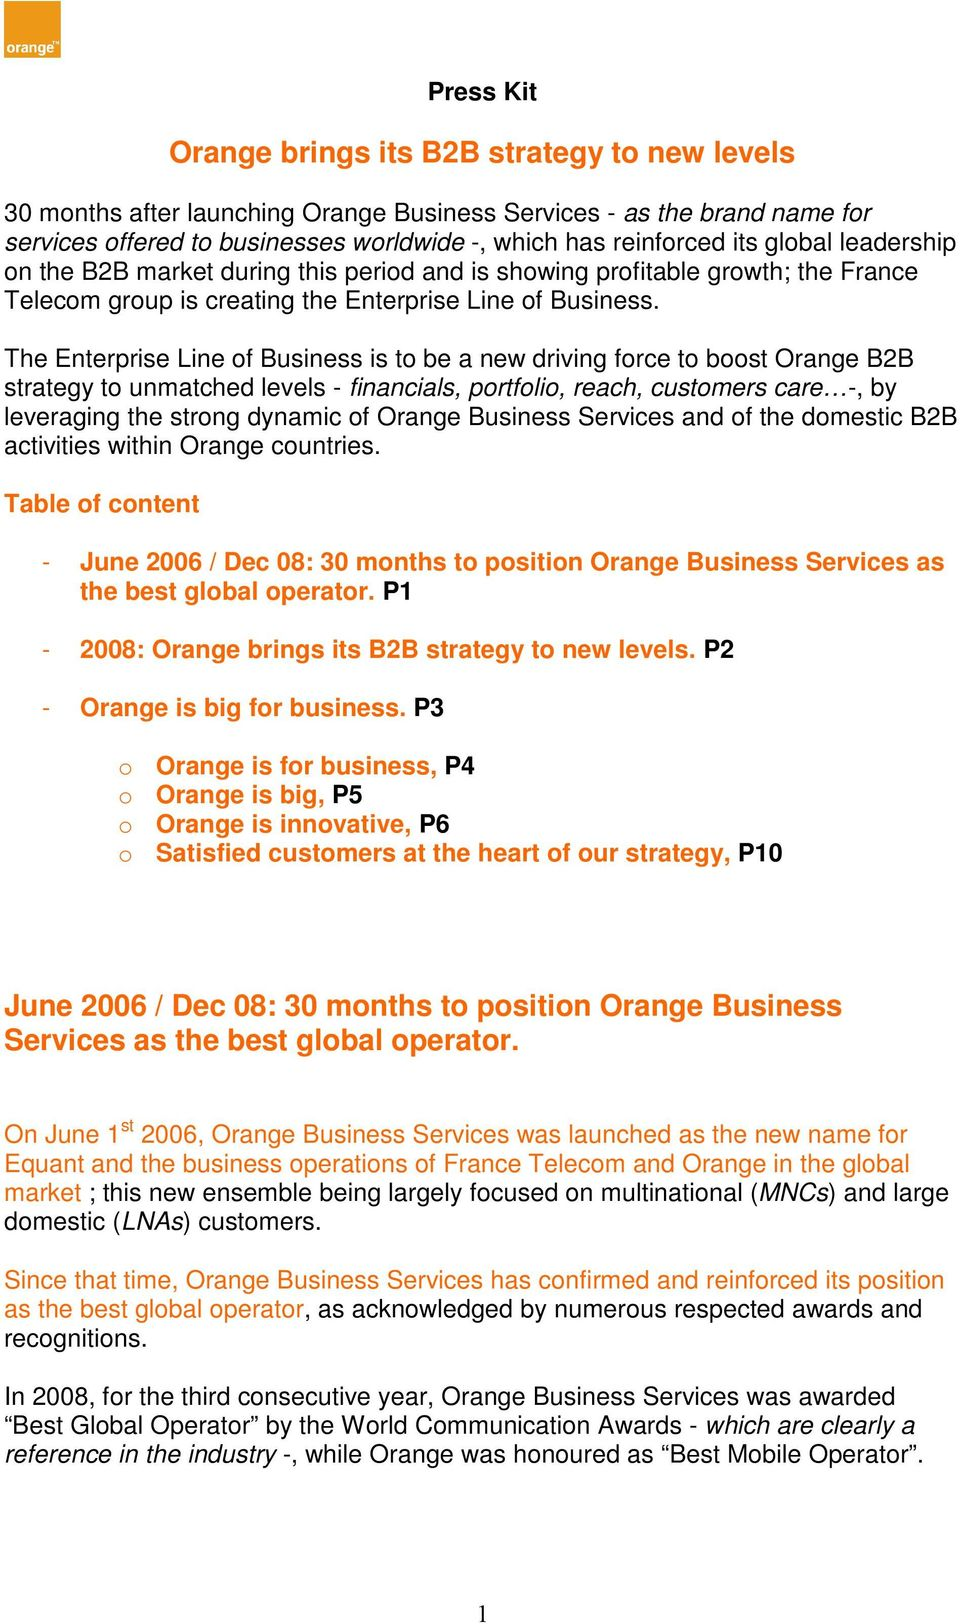 The Enterprise Line of Business is to be a new driving force to boost Orange B2B strategy to unmatched levels - financials, portfolio, reach, customers care -, by leveraging the strong dynamic of